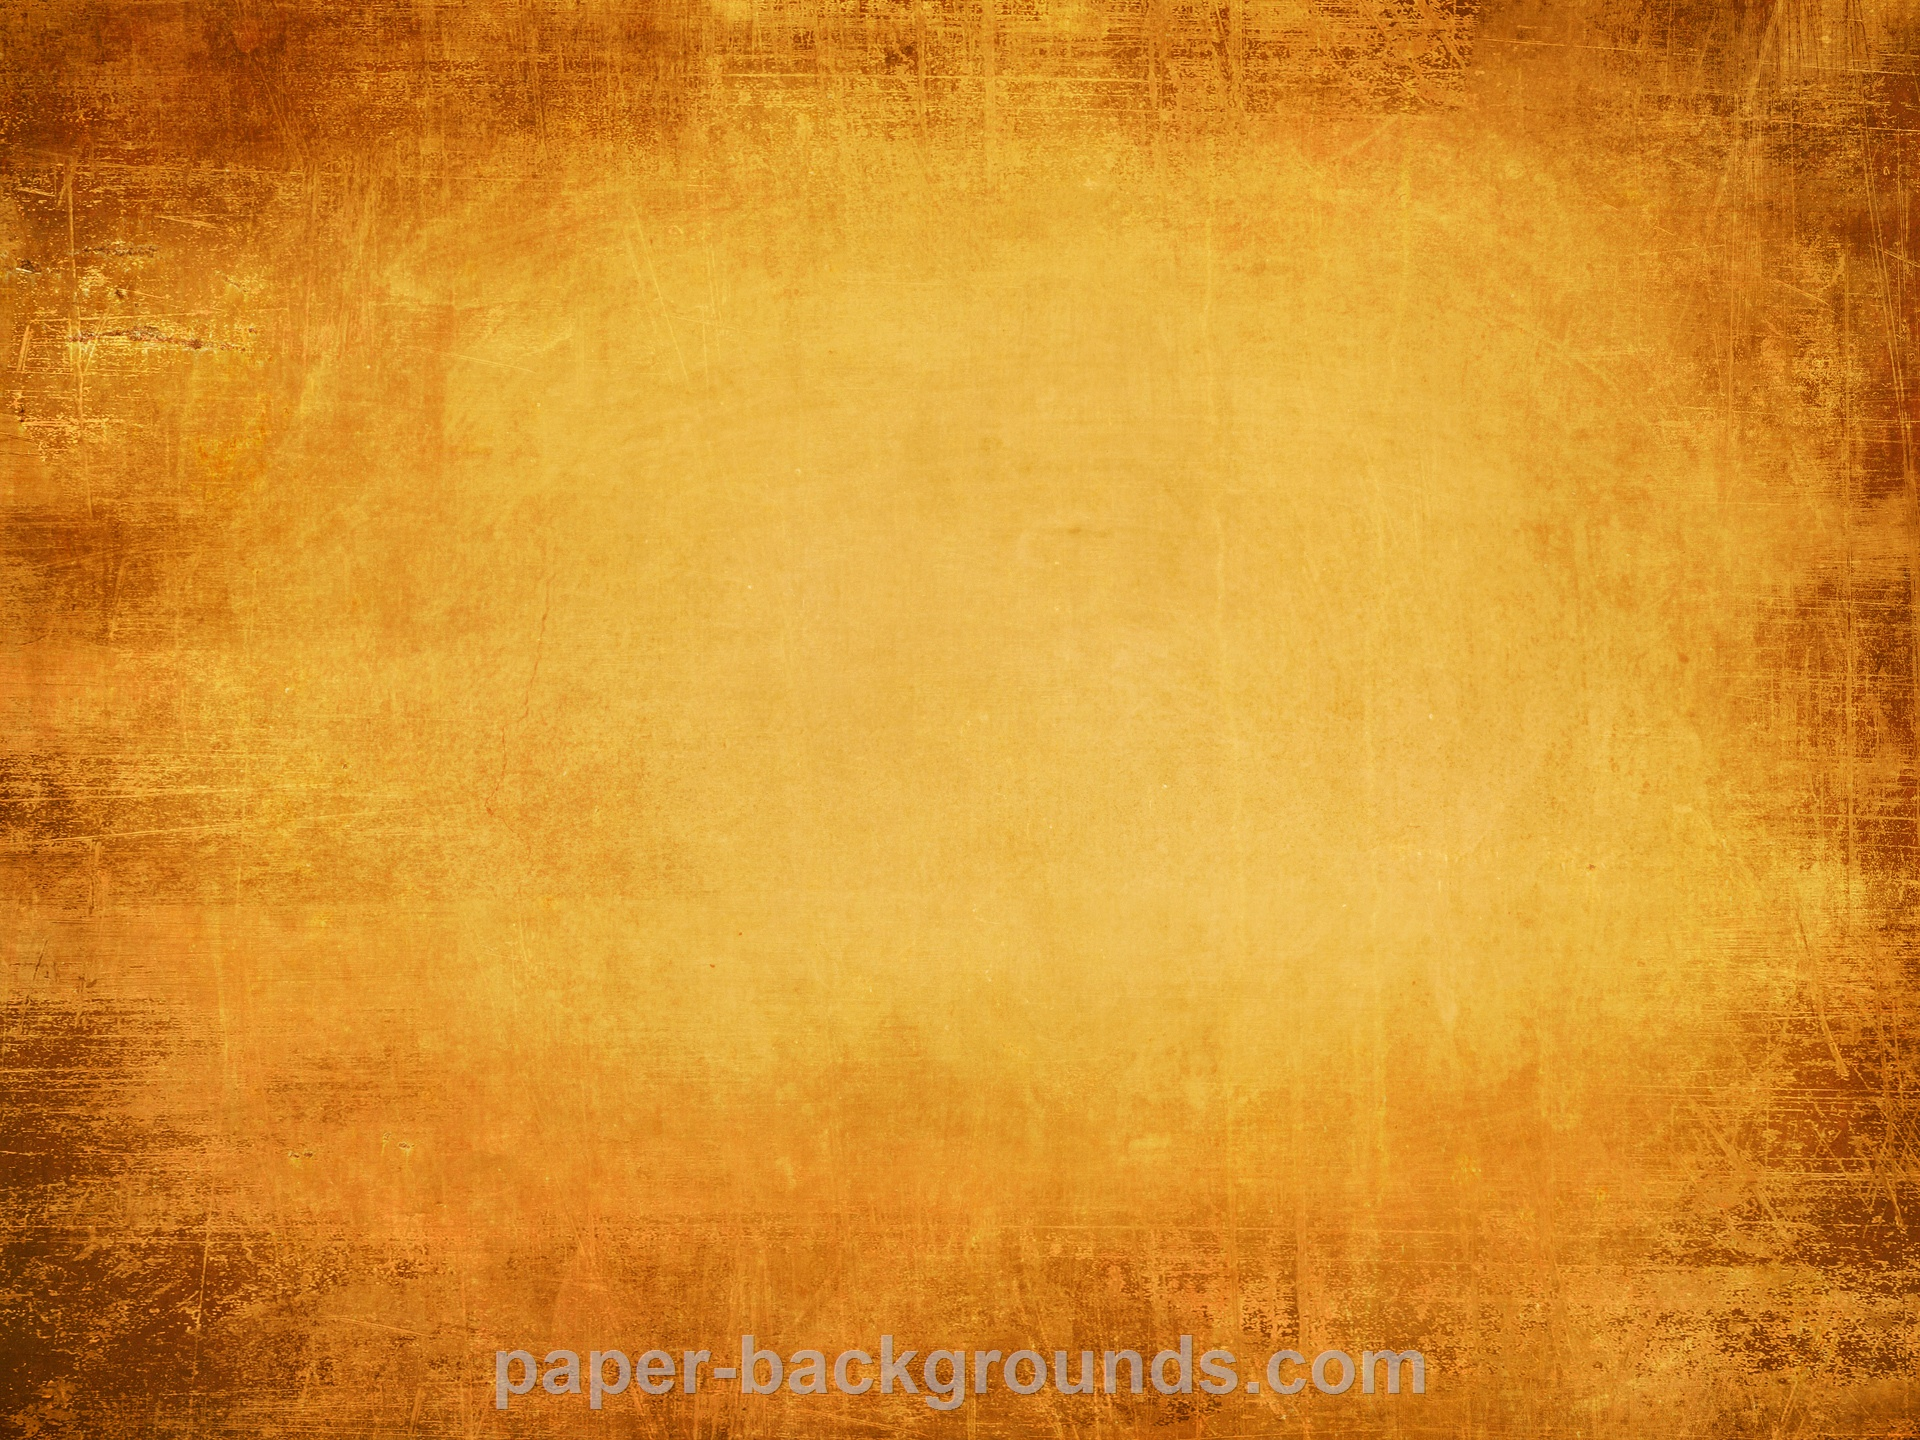 Paper Backgrounds orange grunge background hd 1920x1440